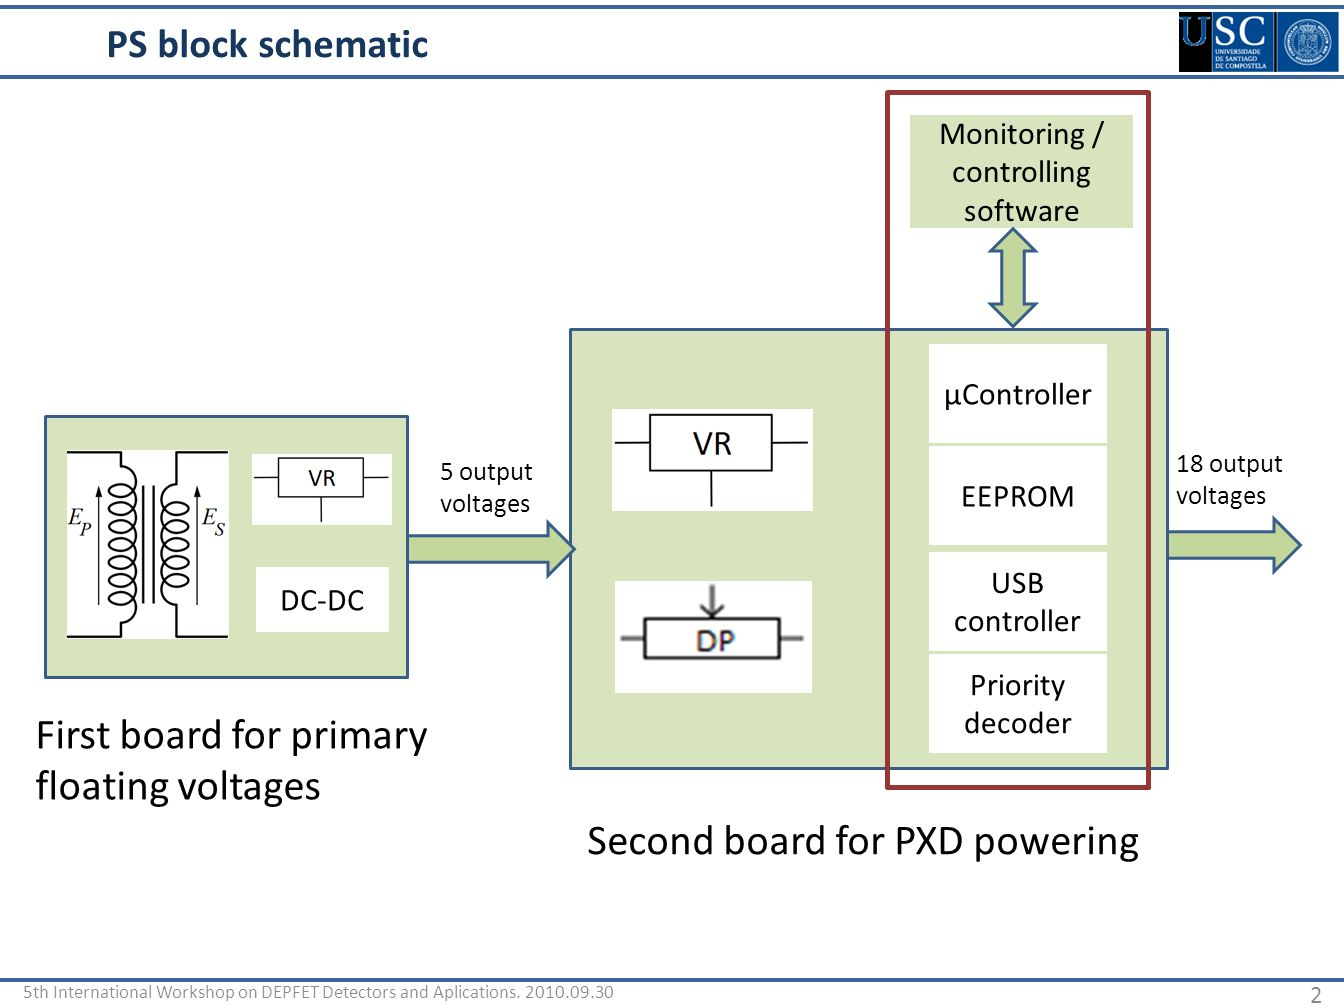 Pxd Power Supply Design 1 5th International Workshop On Depfet Usb Controller Schematic 2 Ps Block